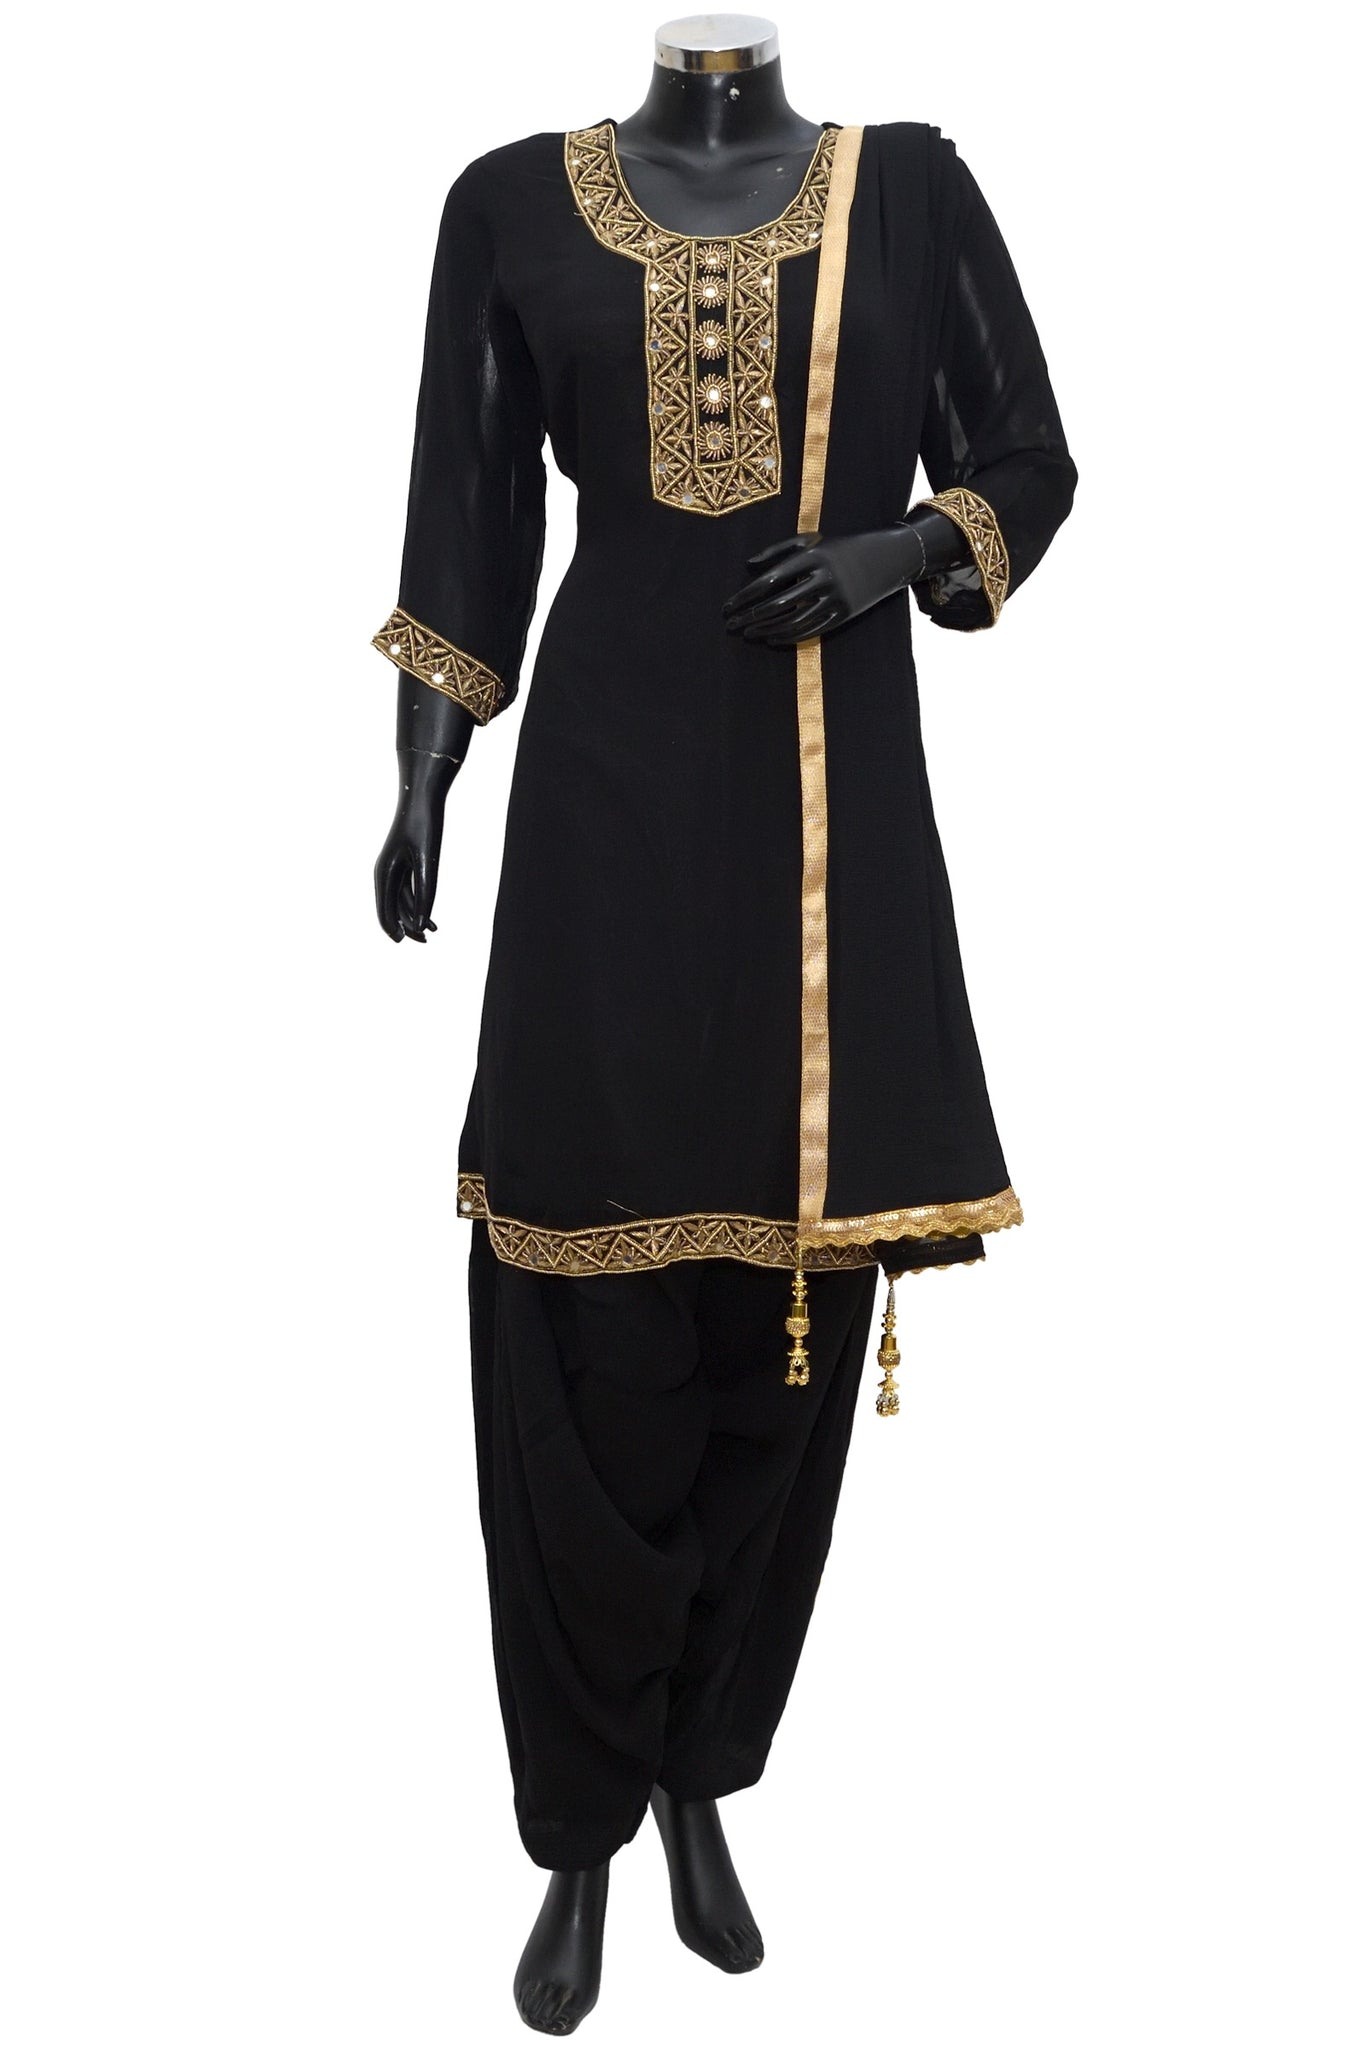 Patiala suit set #fdn1142-321